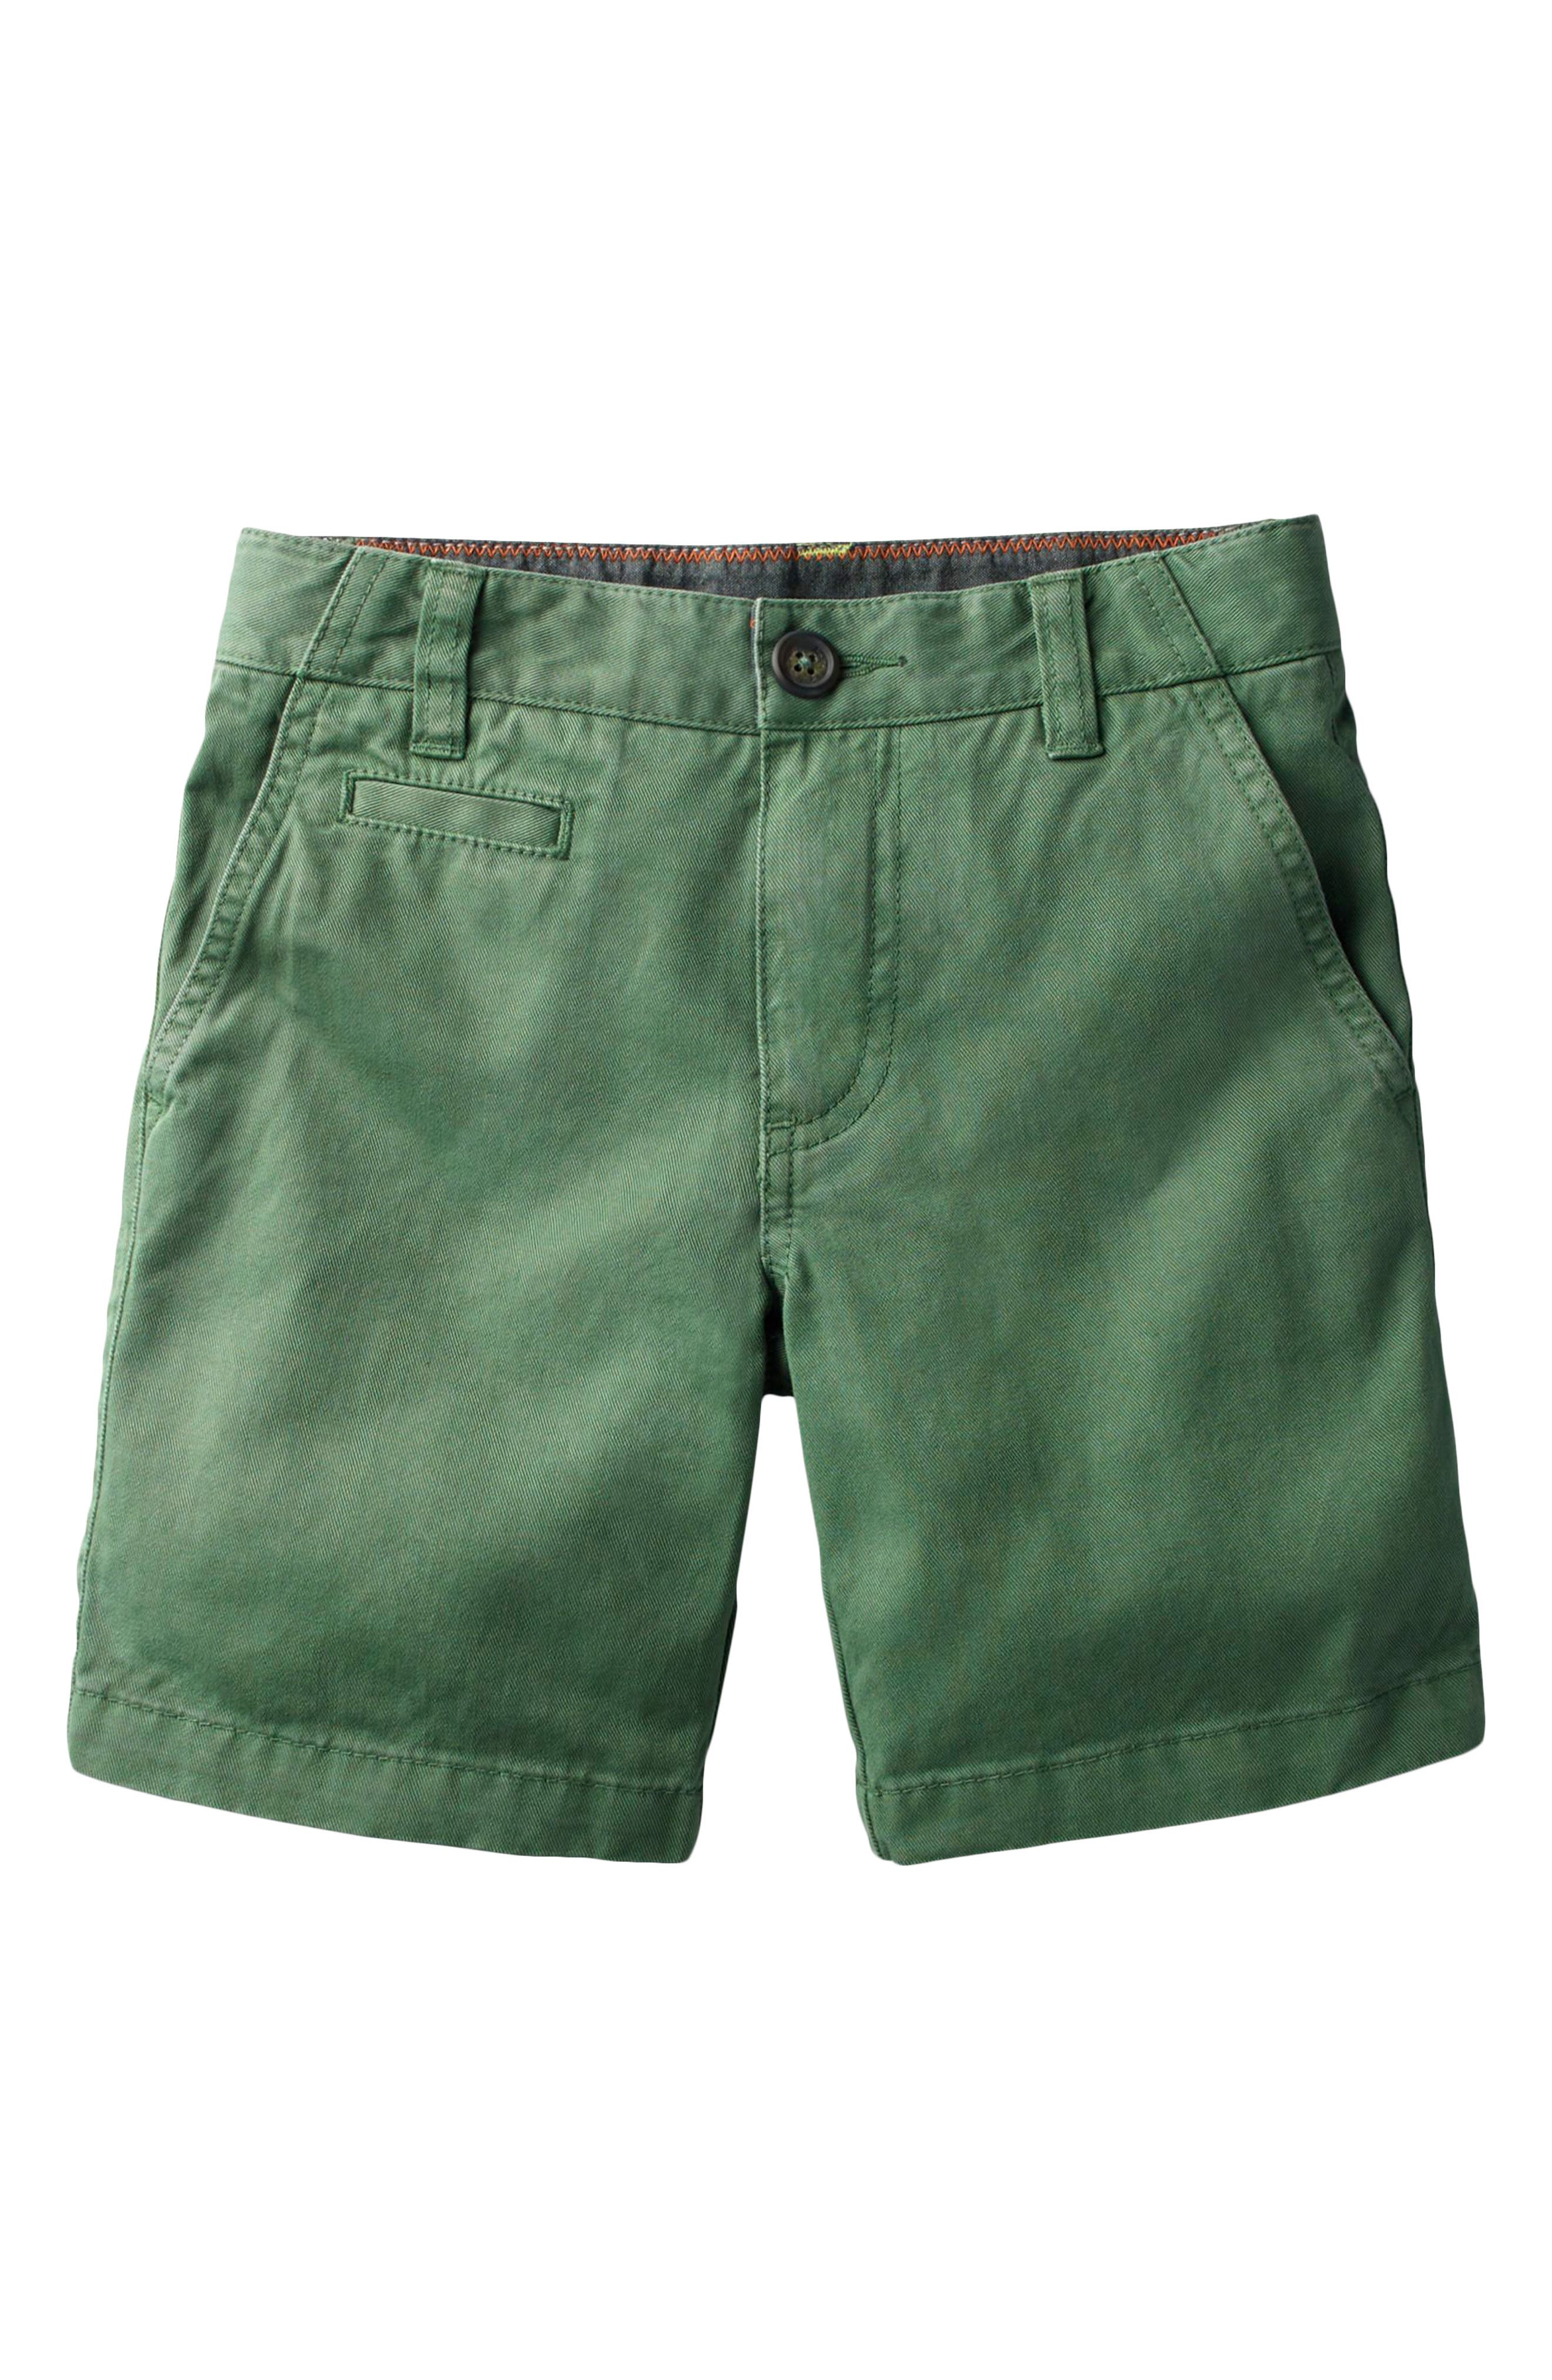 Chino Shorts,                             Main thumbnail 1, color,                             Rosemary Green